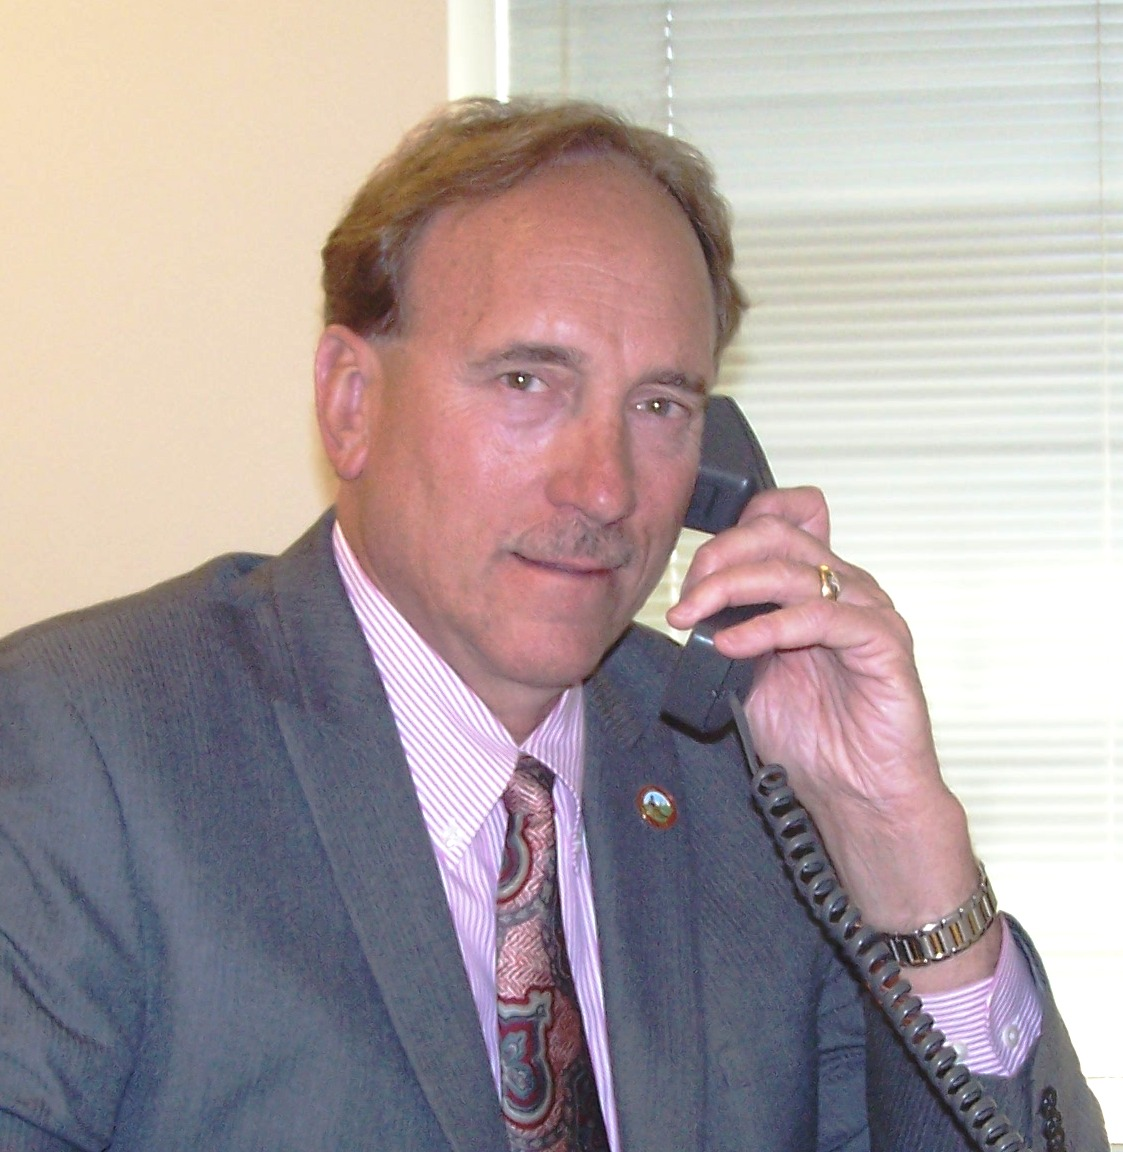 County Commissioners' Liaison David Dunn